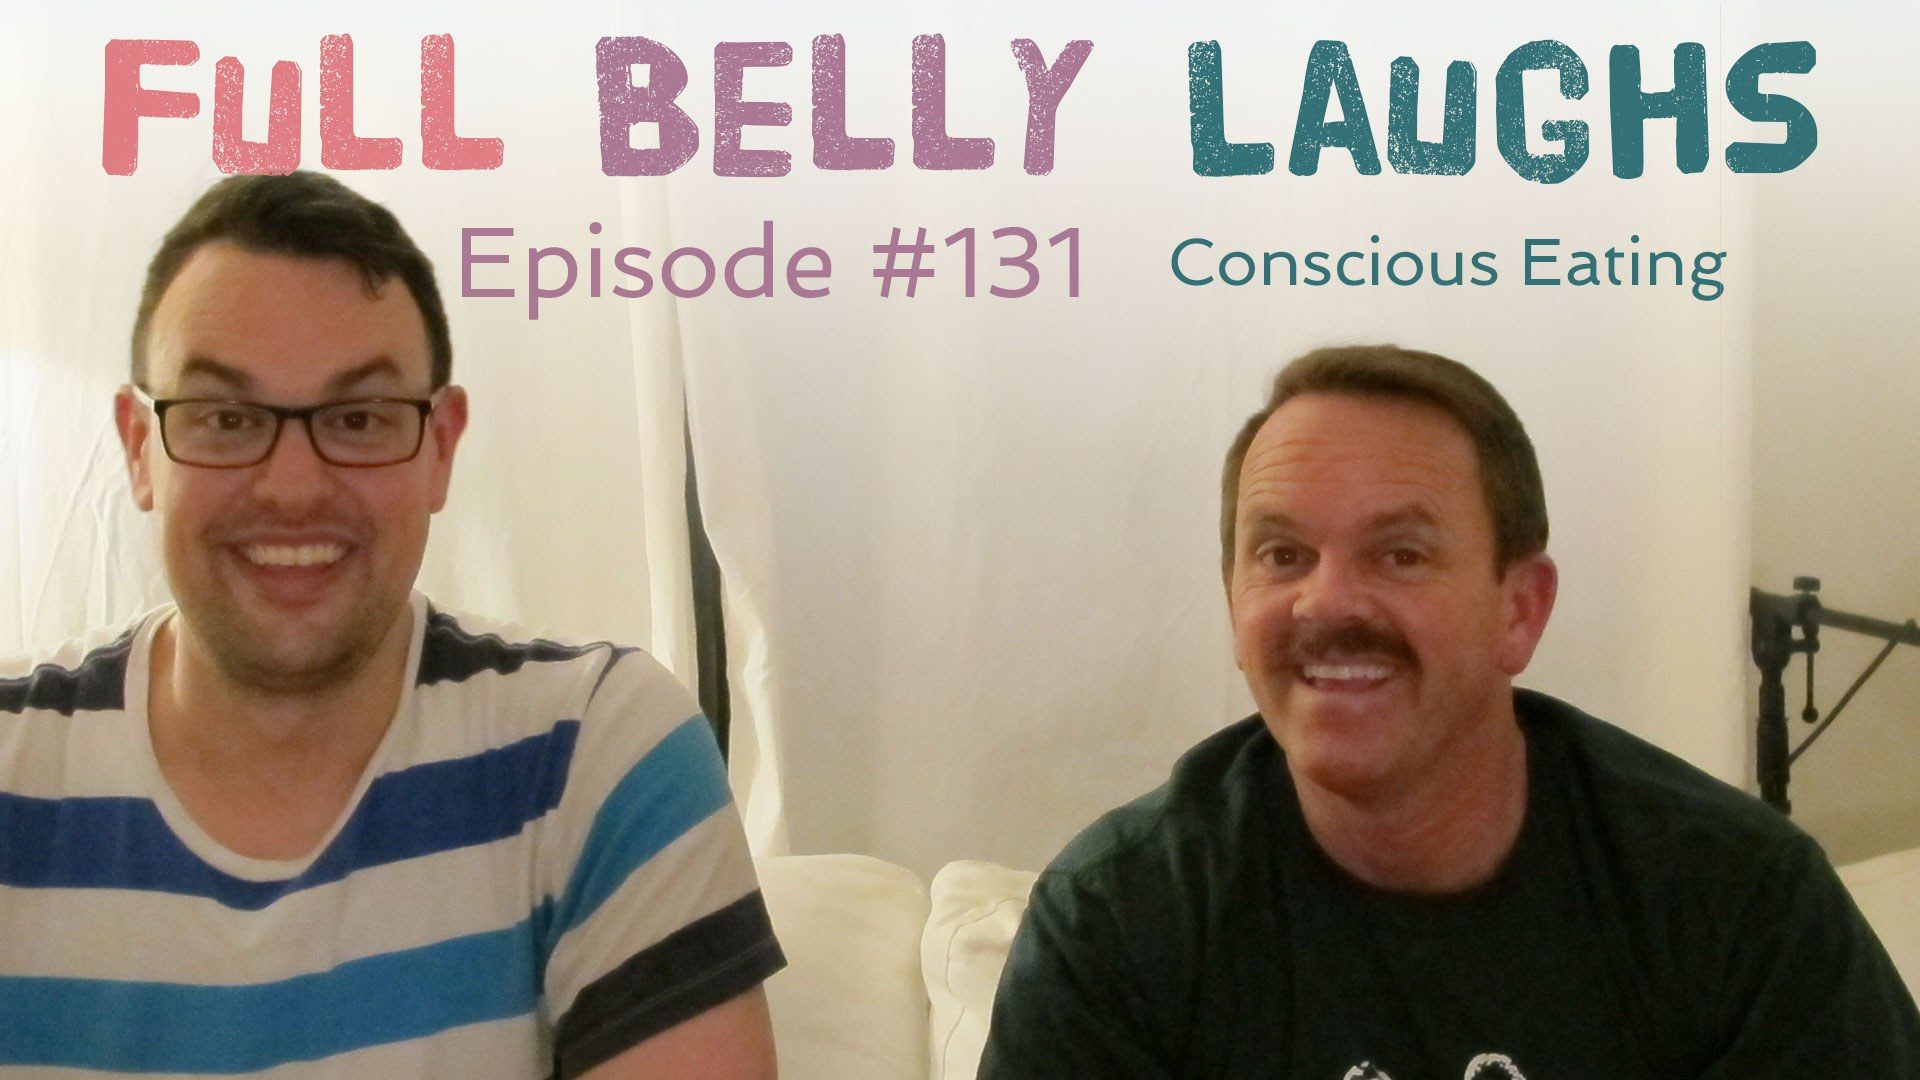 full belly laughs podcast episode 131 conscious eating audio artwork